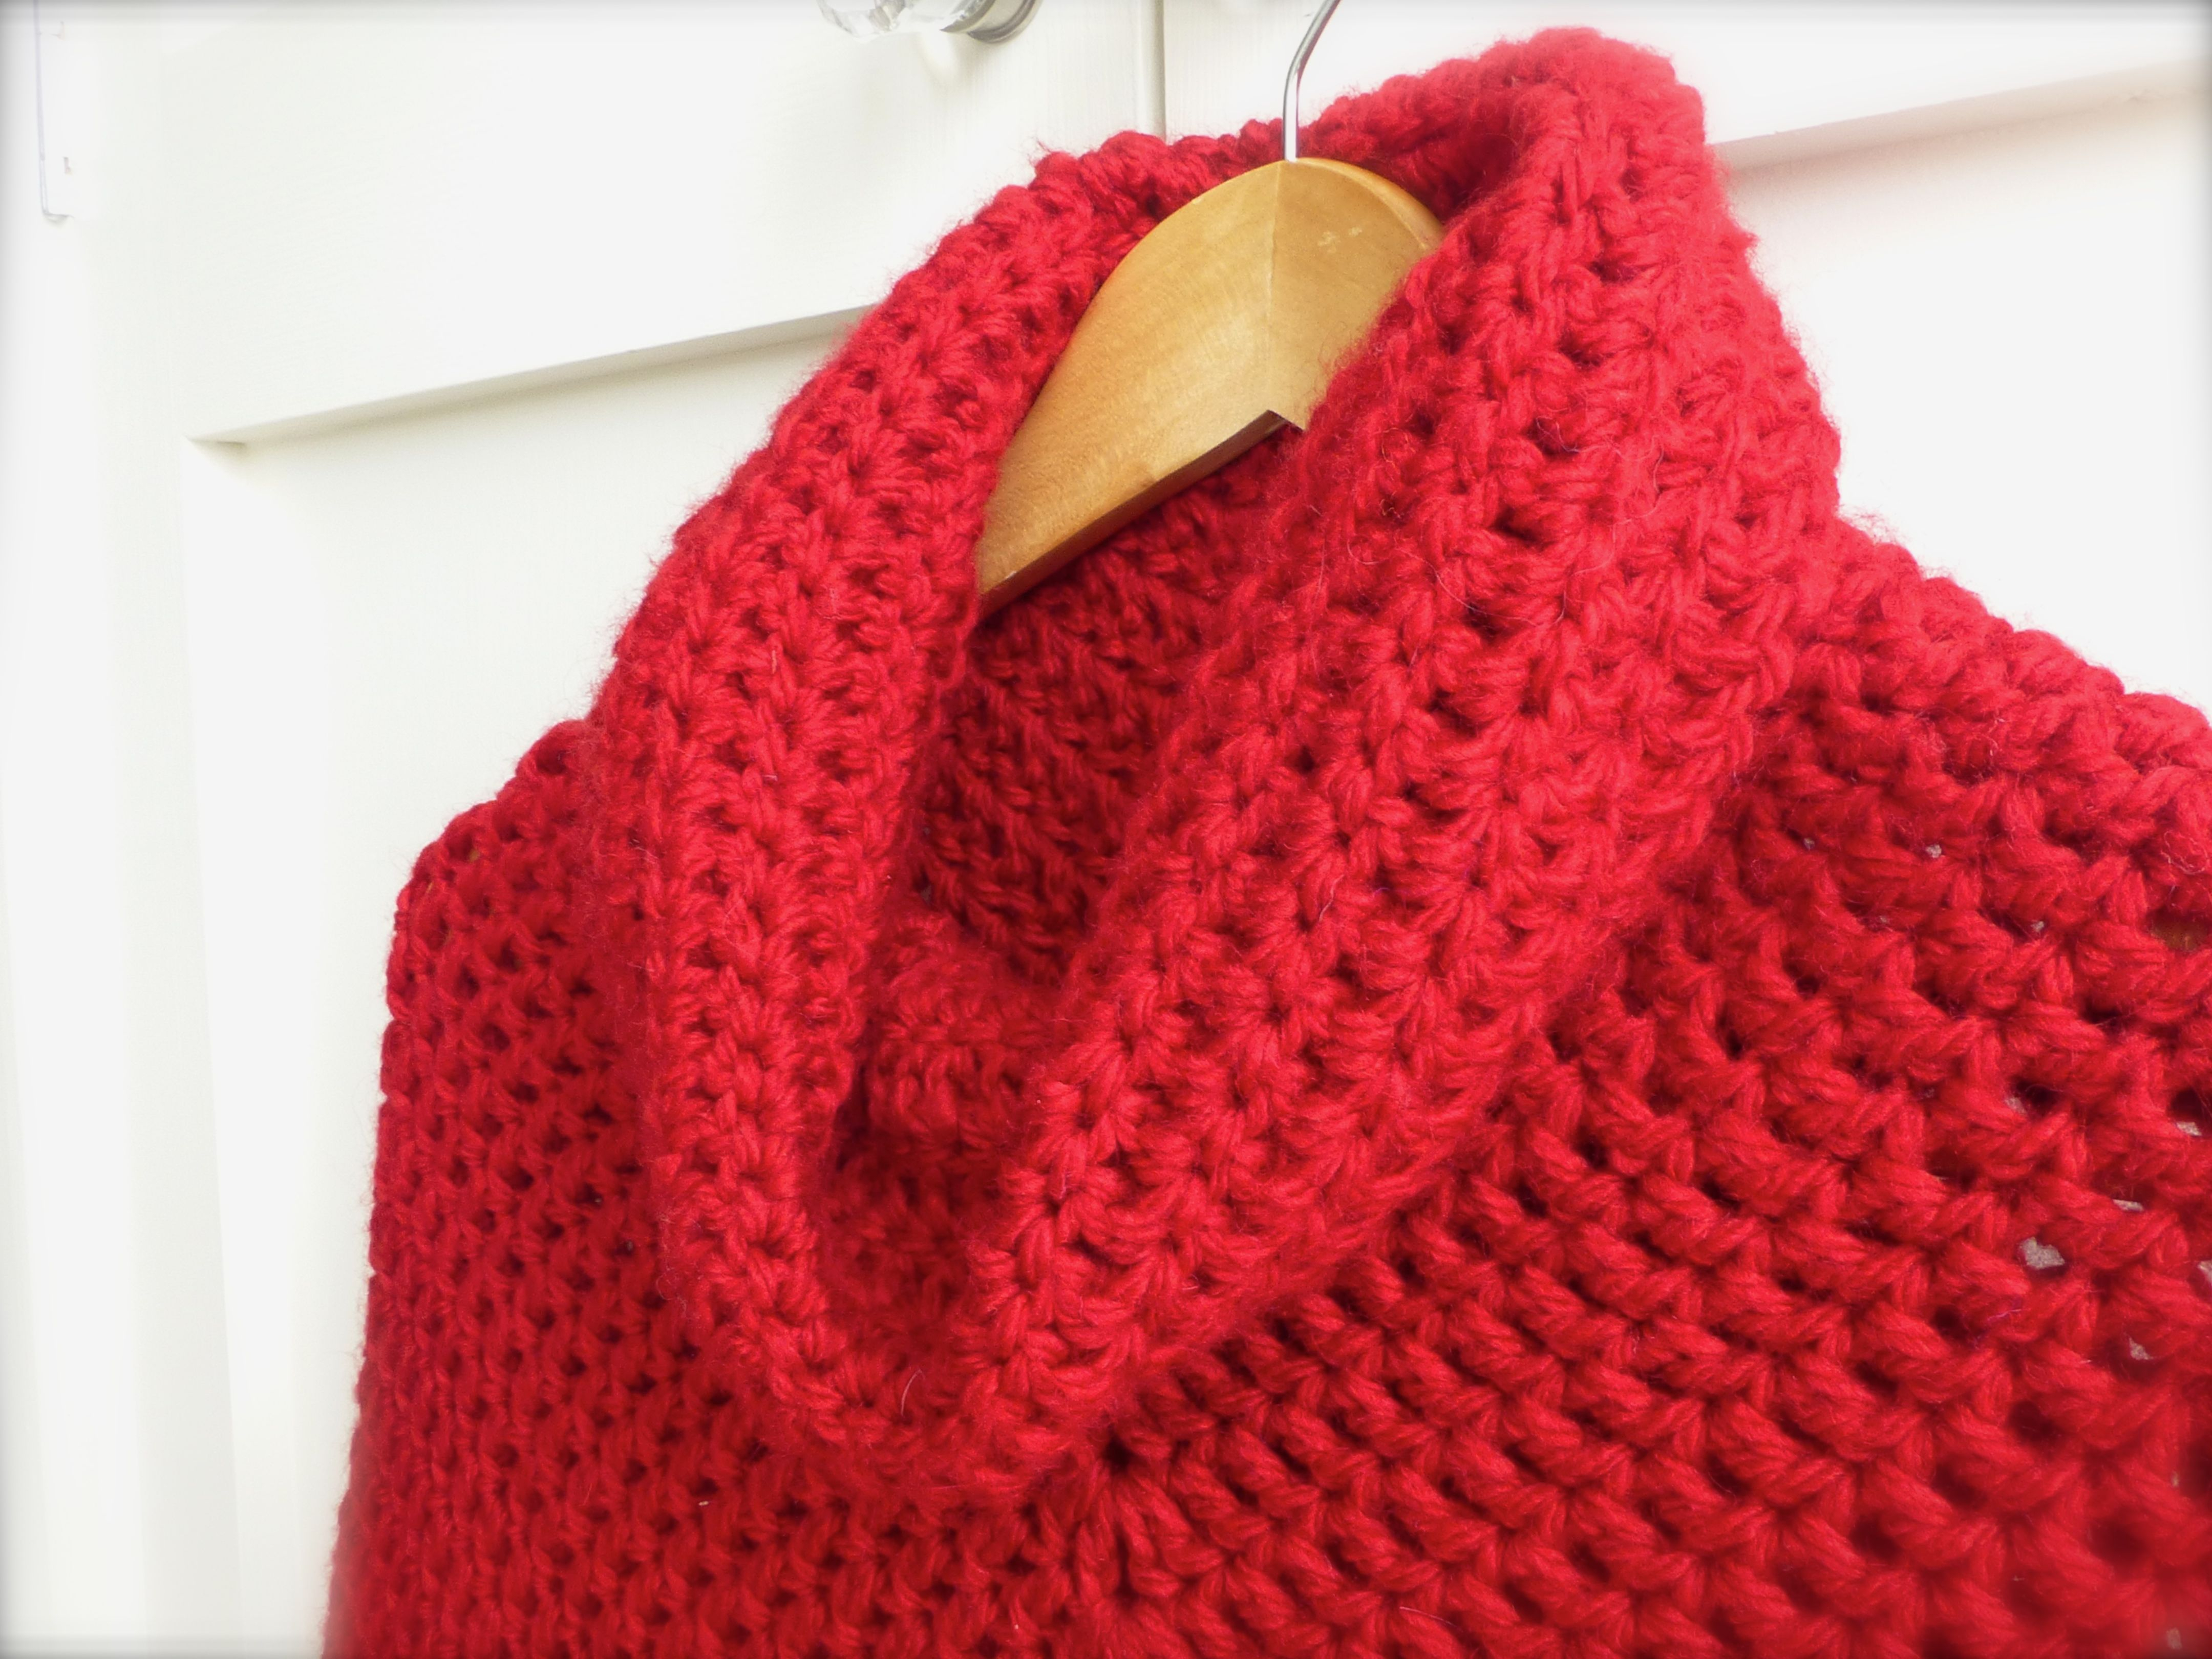 List of Free Crochet Patterns for Toddlers Ponchos Tutorial Crochet Poncho Sewchet